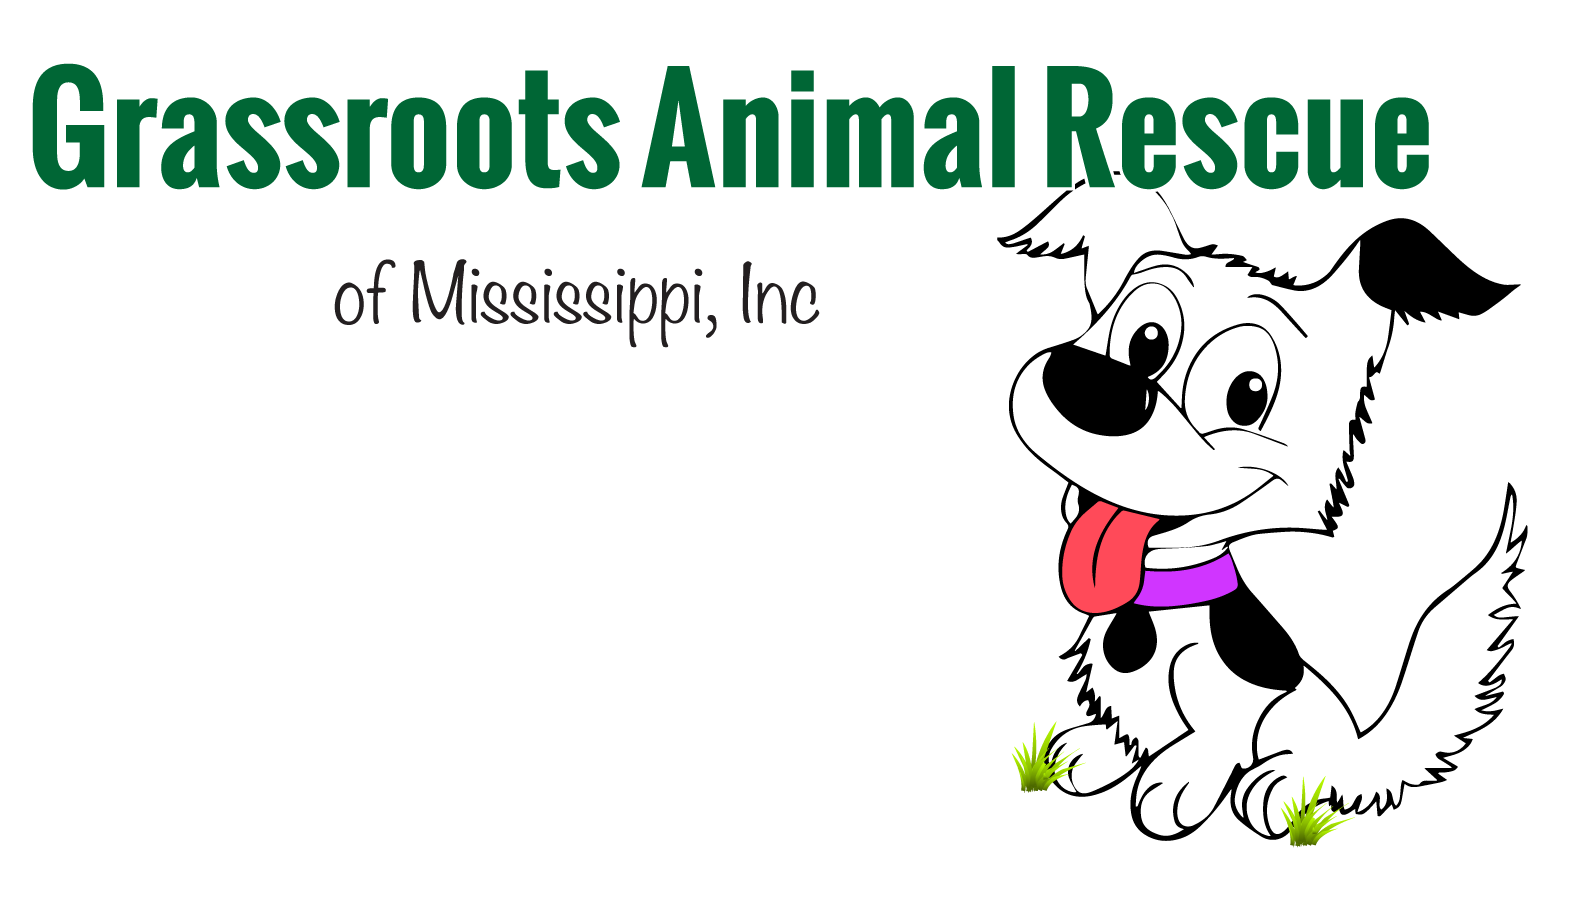 Grassroots Animal Rescue